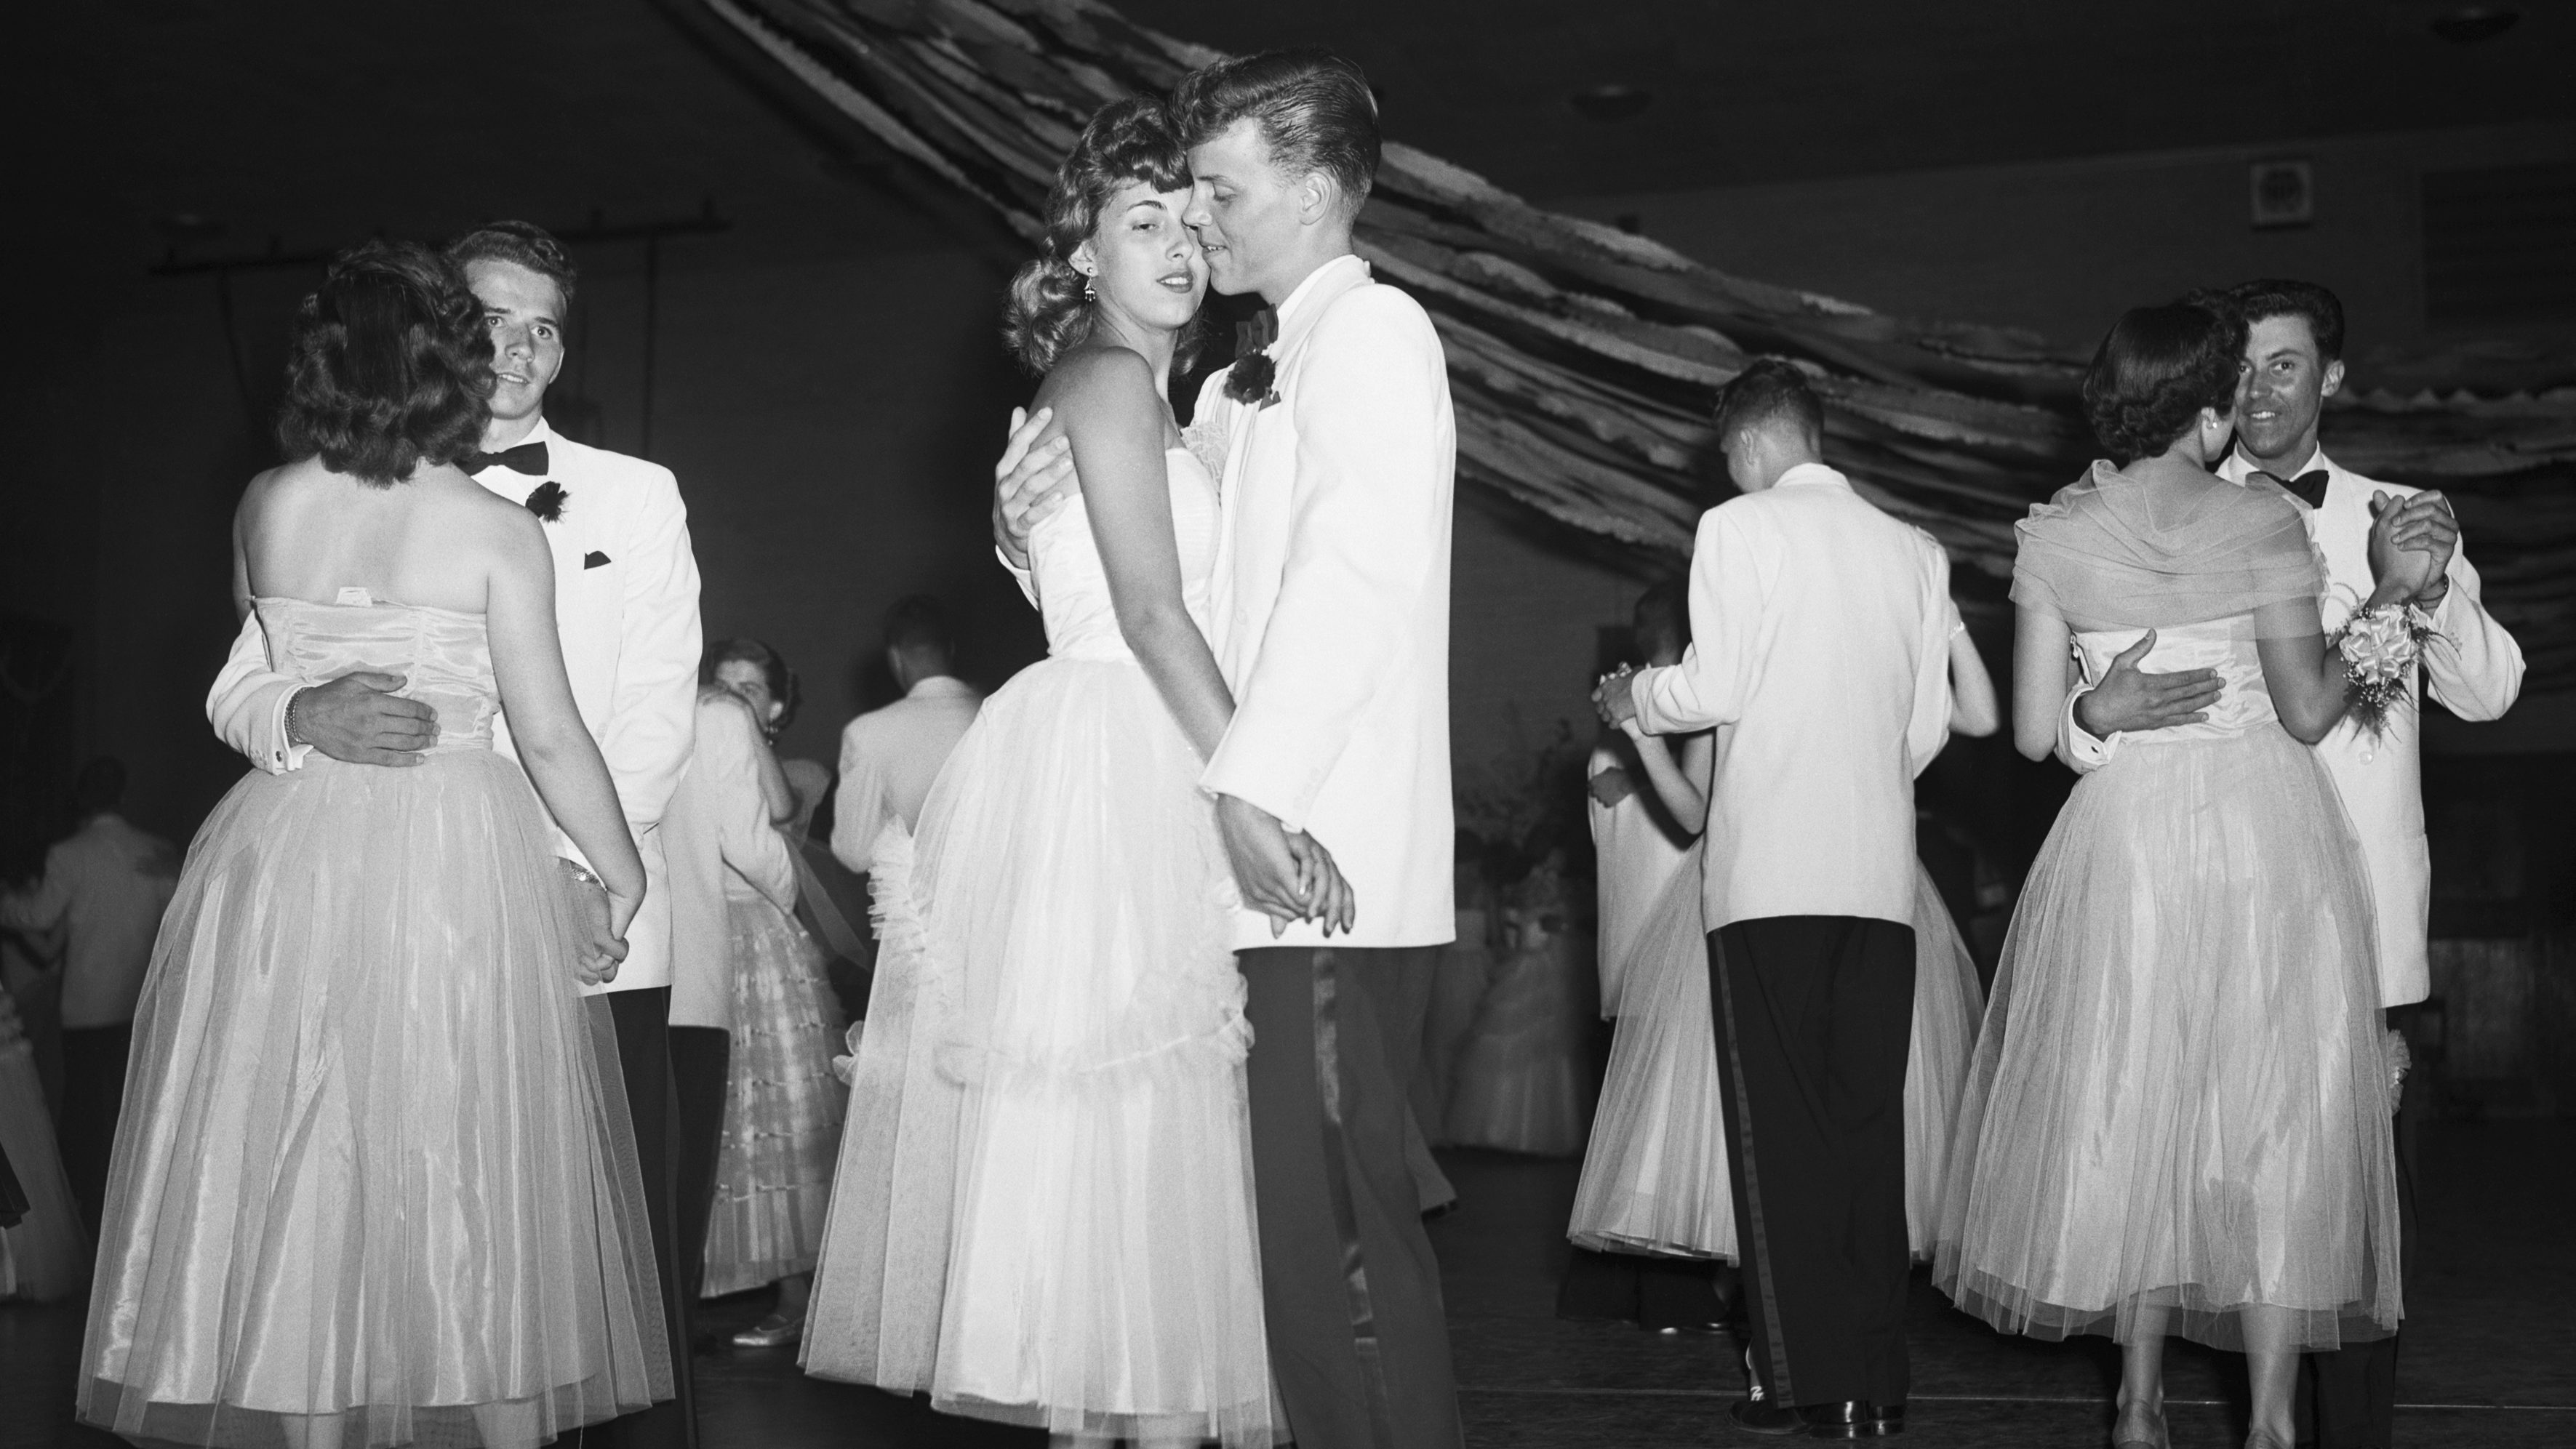 David Brandt and Ruth Estelle dance at the Senior Prom at Anacosta High School. Their double date, Barbara Belchak and Dan Knode, also dance, left. | Location: Anacosta, Maryland, USA.